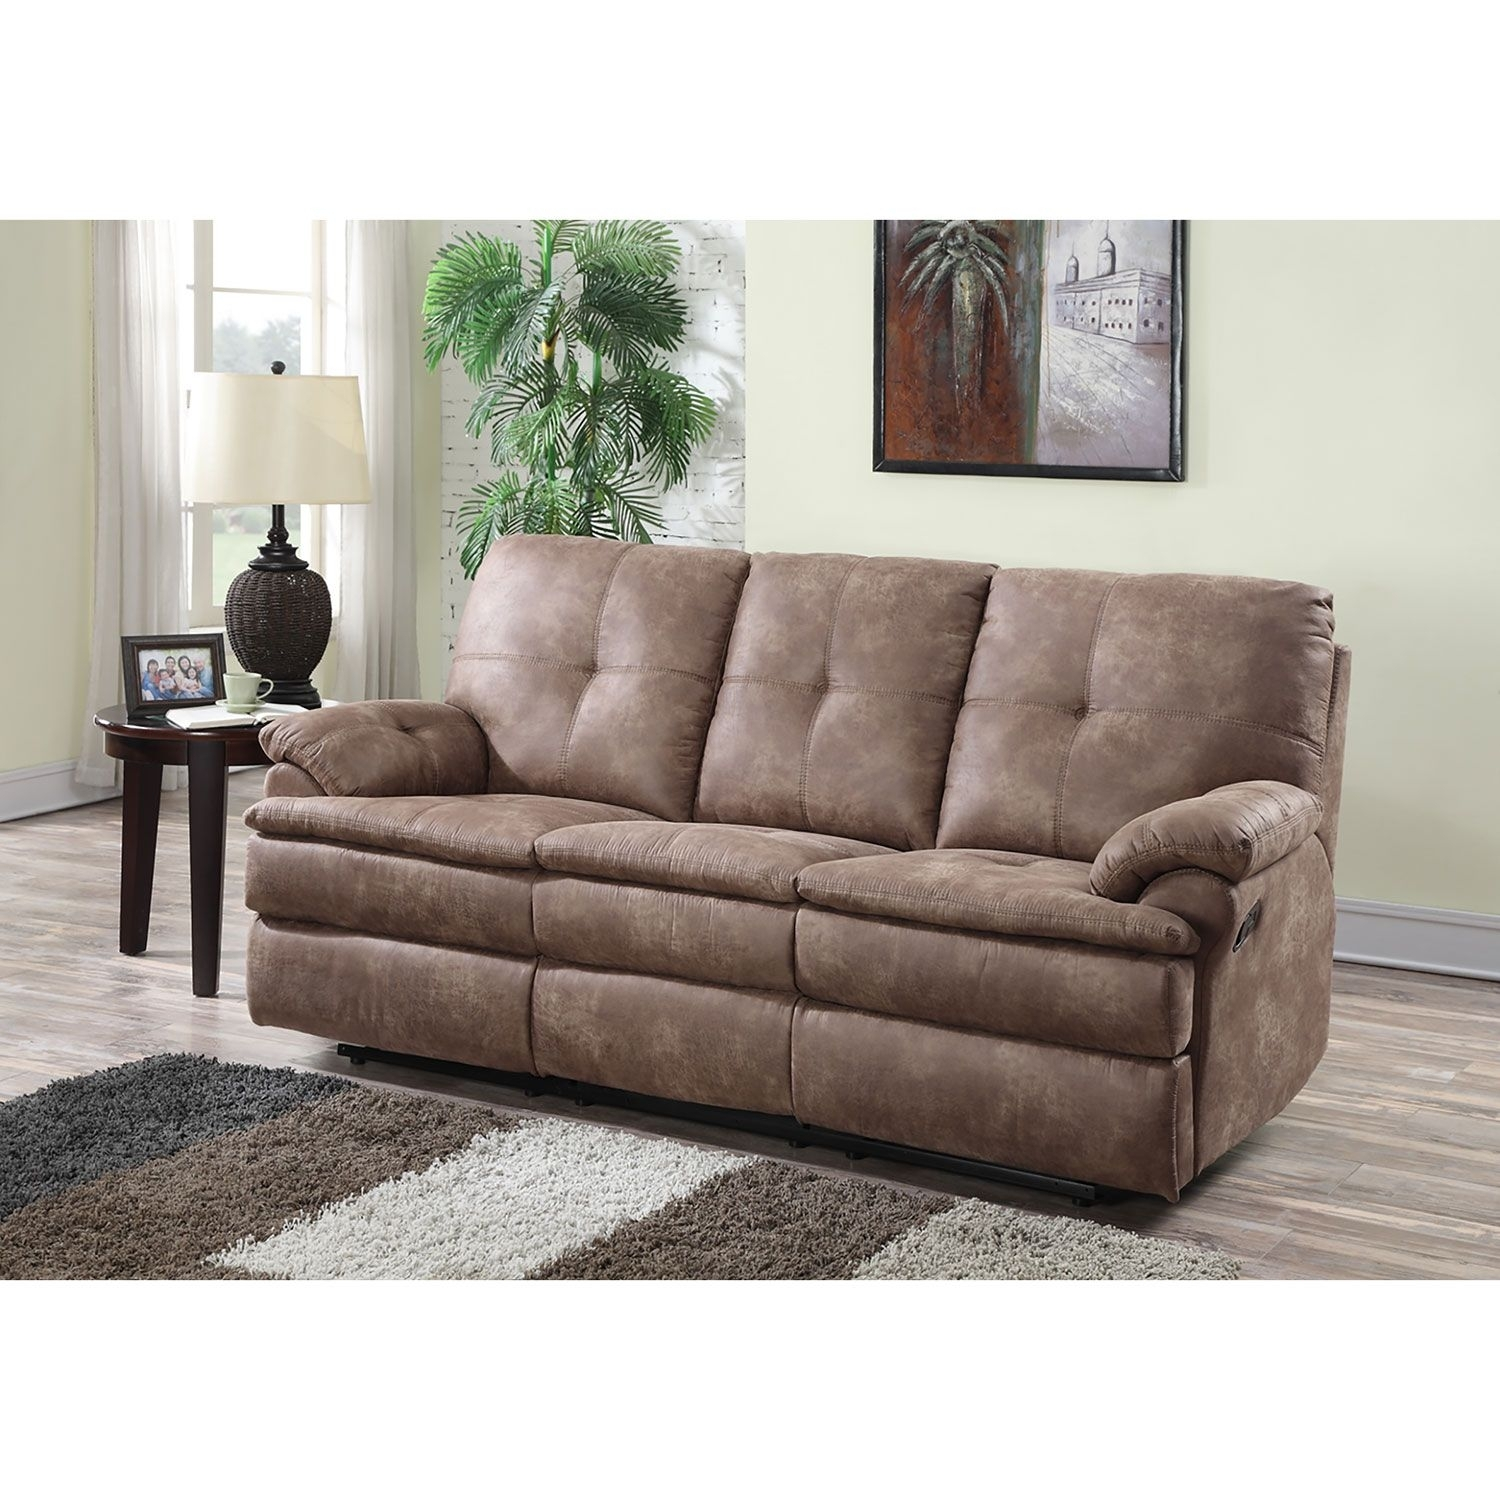 Buck Fabric Reclining Sofa – Sam's Club | Home Furniture Ideas For Sectional Sofas At Sam's Club (View 4 of 15)